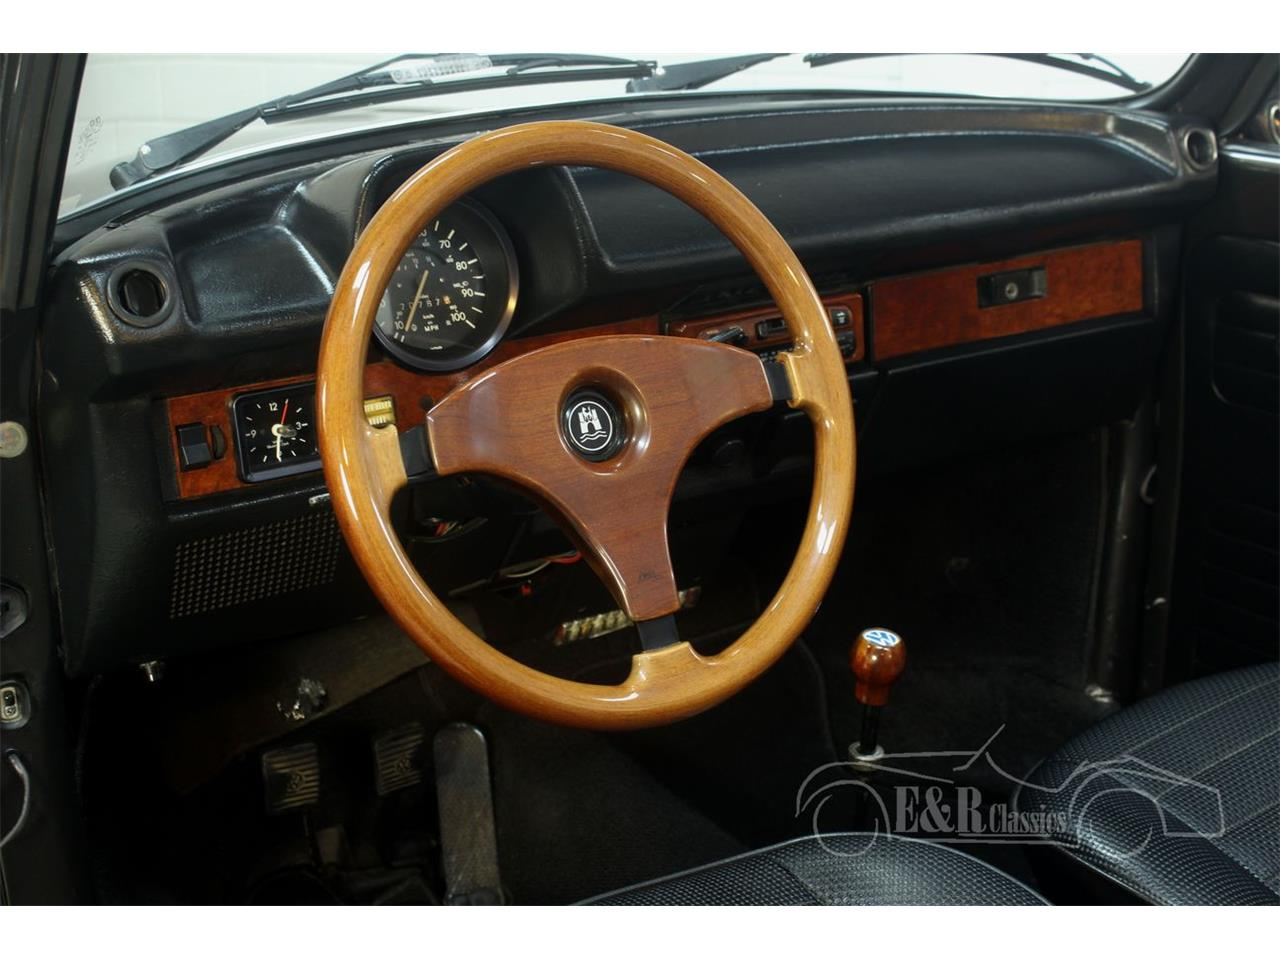 Large Picture of '79 Volkswagen Beetle - $29,000.00 - OICV